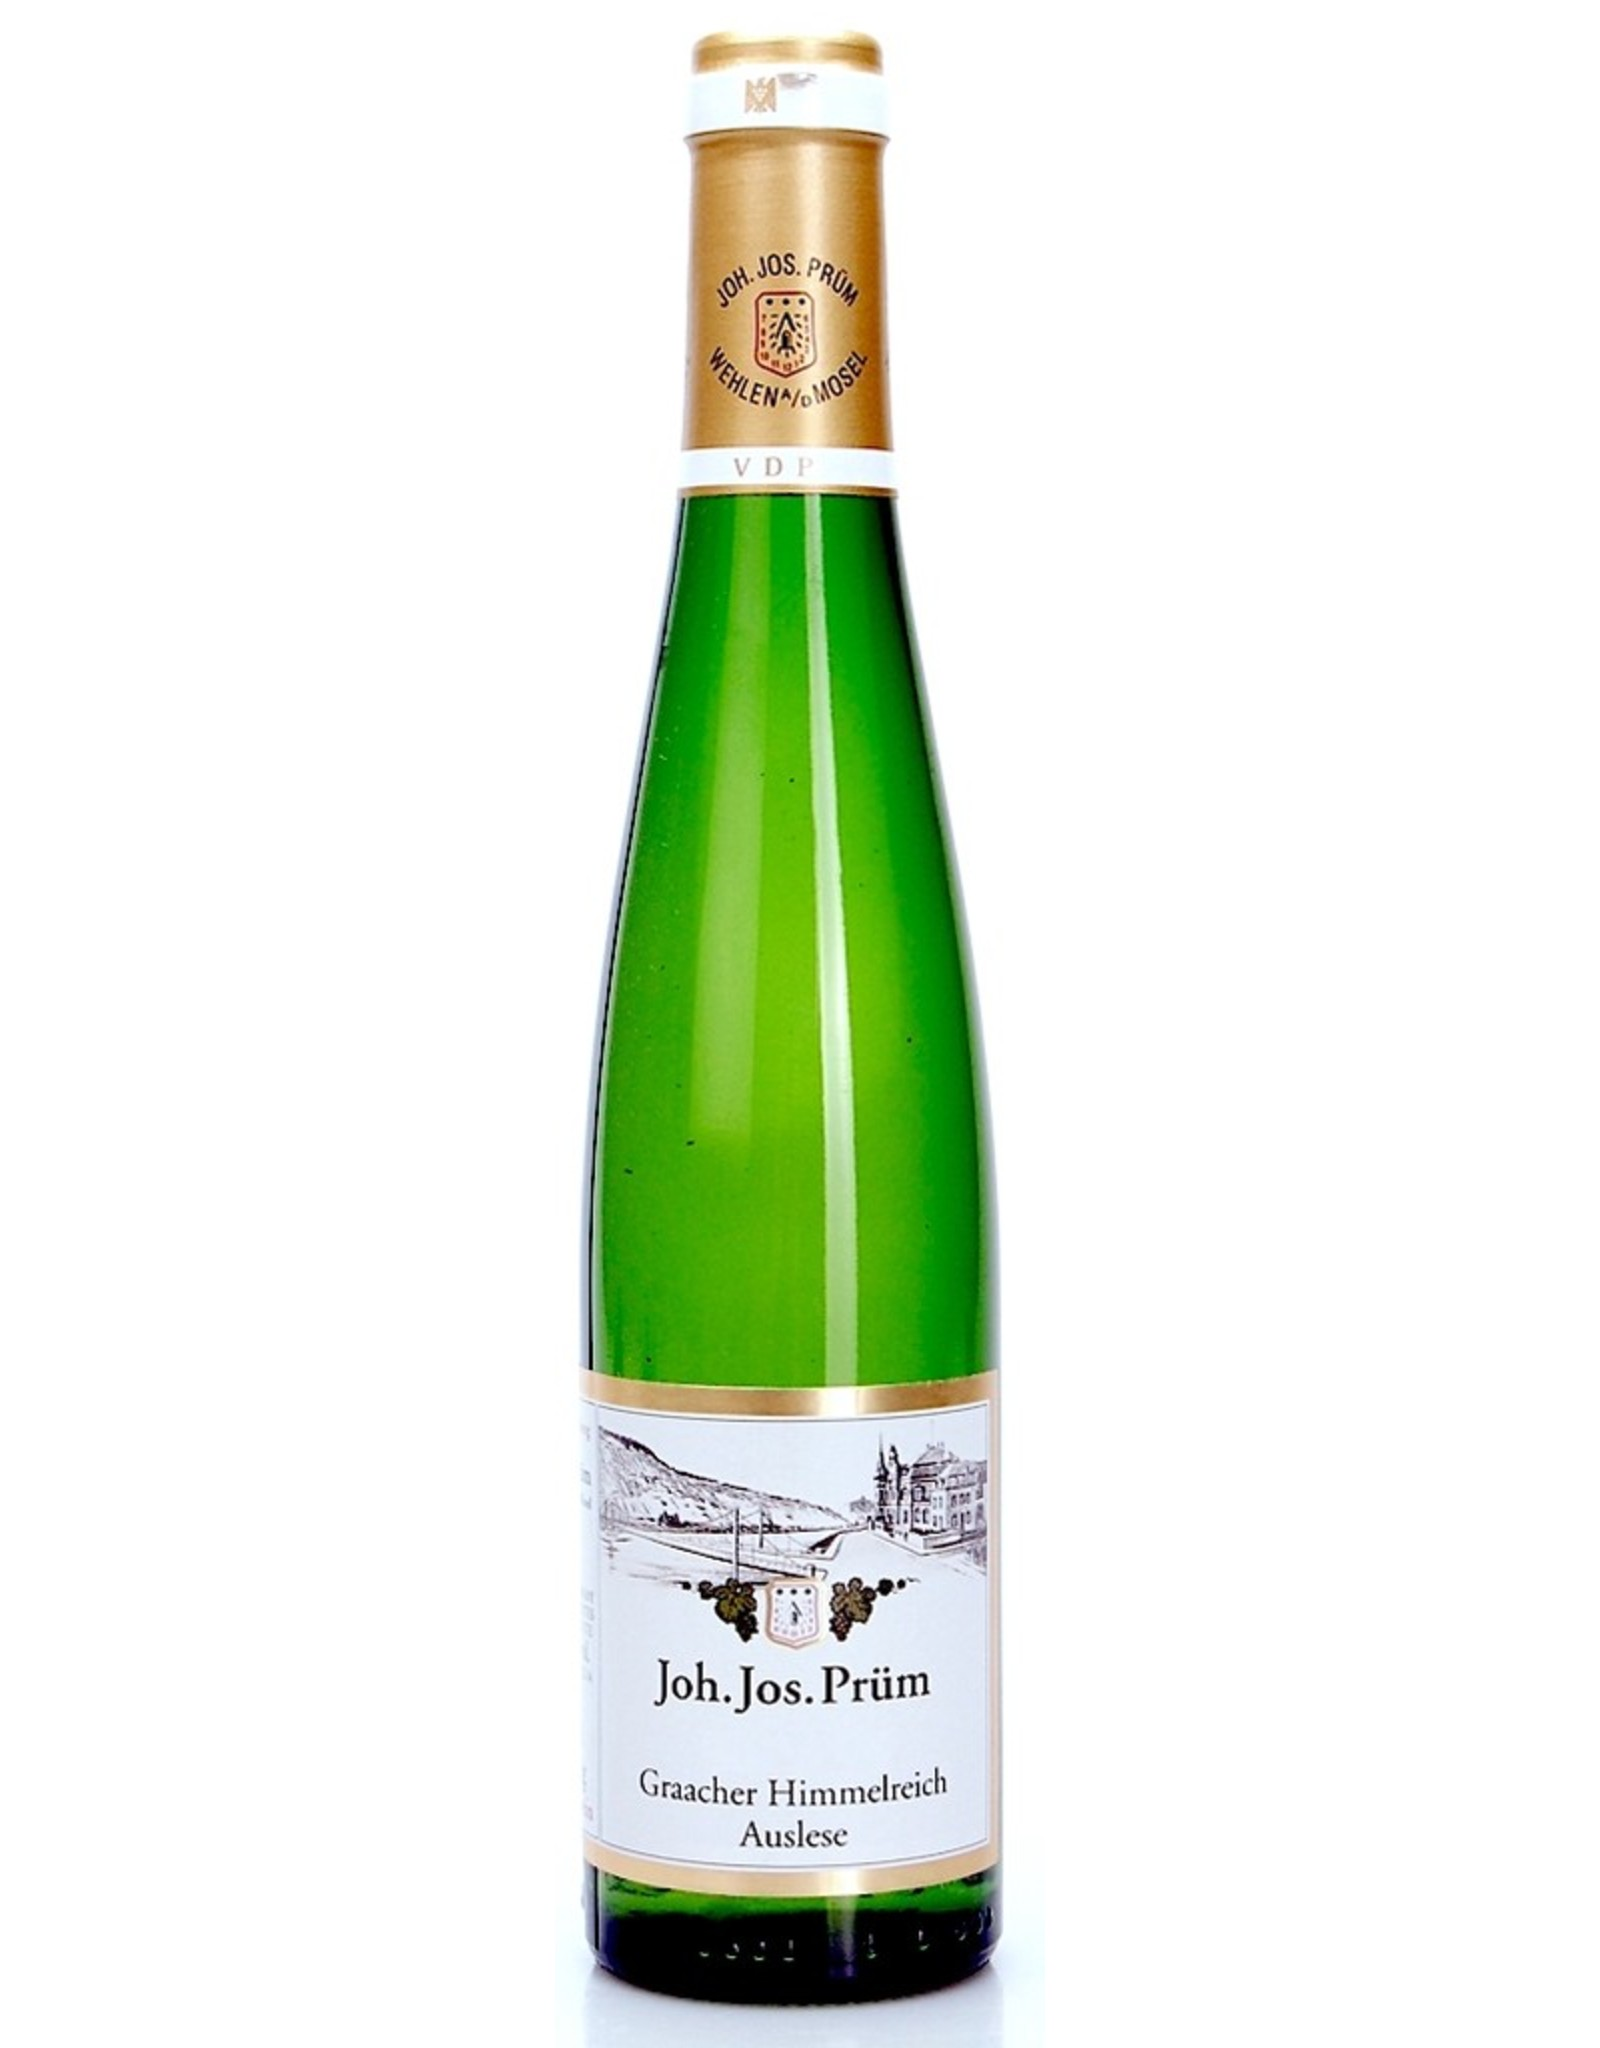 White Wine 2015, 375ml Joh. Jos. Prum GOLD CAP Auslese, Riesling, Graacher Himmelreich, Mosel, Germany, 7.5% Alc, CT95.5 RP95 V94